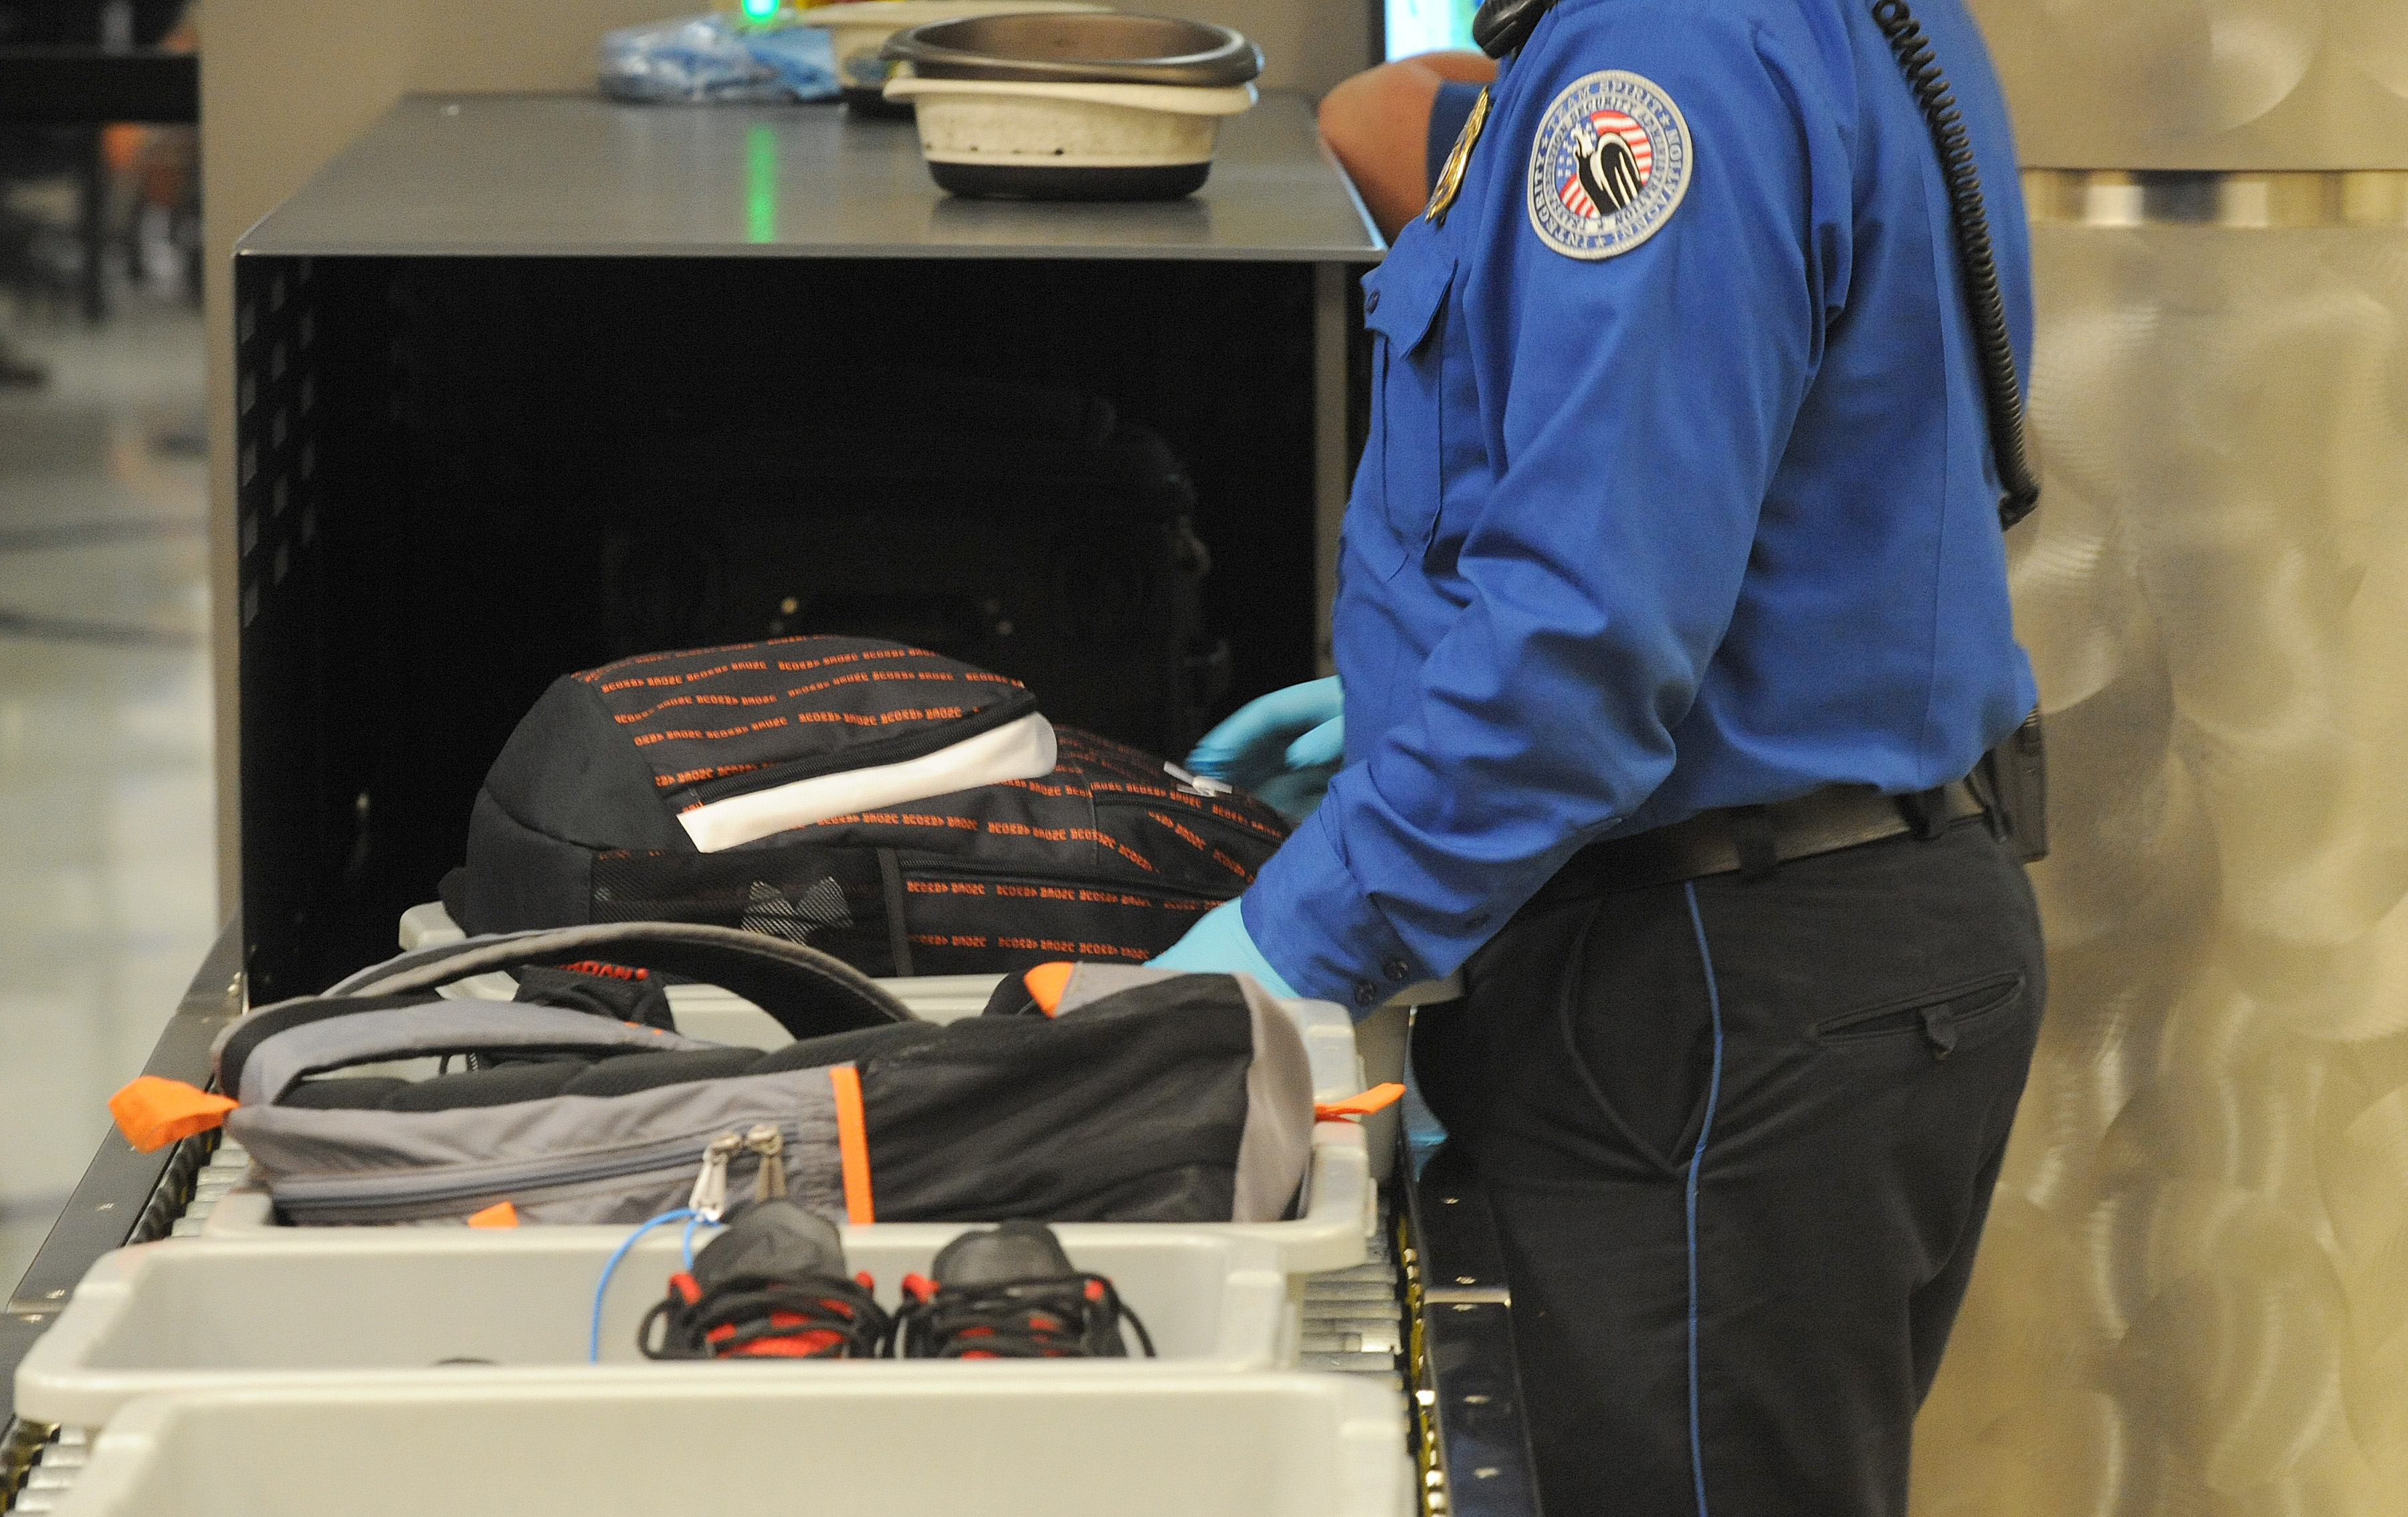 faa employee arrested after flying with gun in carry